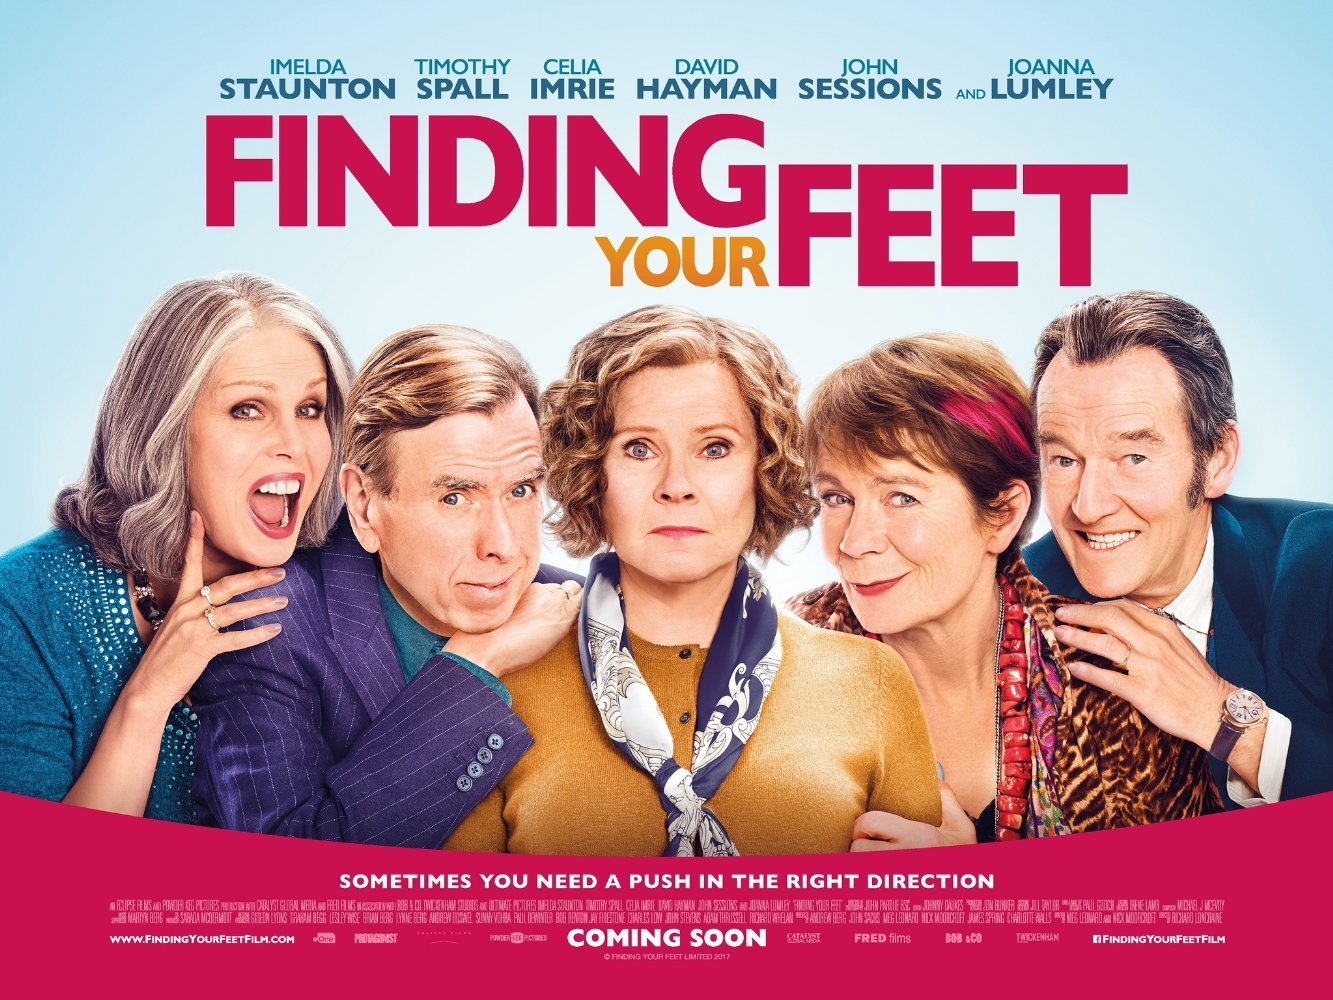 Finding-Your-Feet-movie-poster